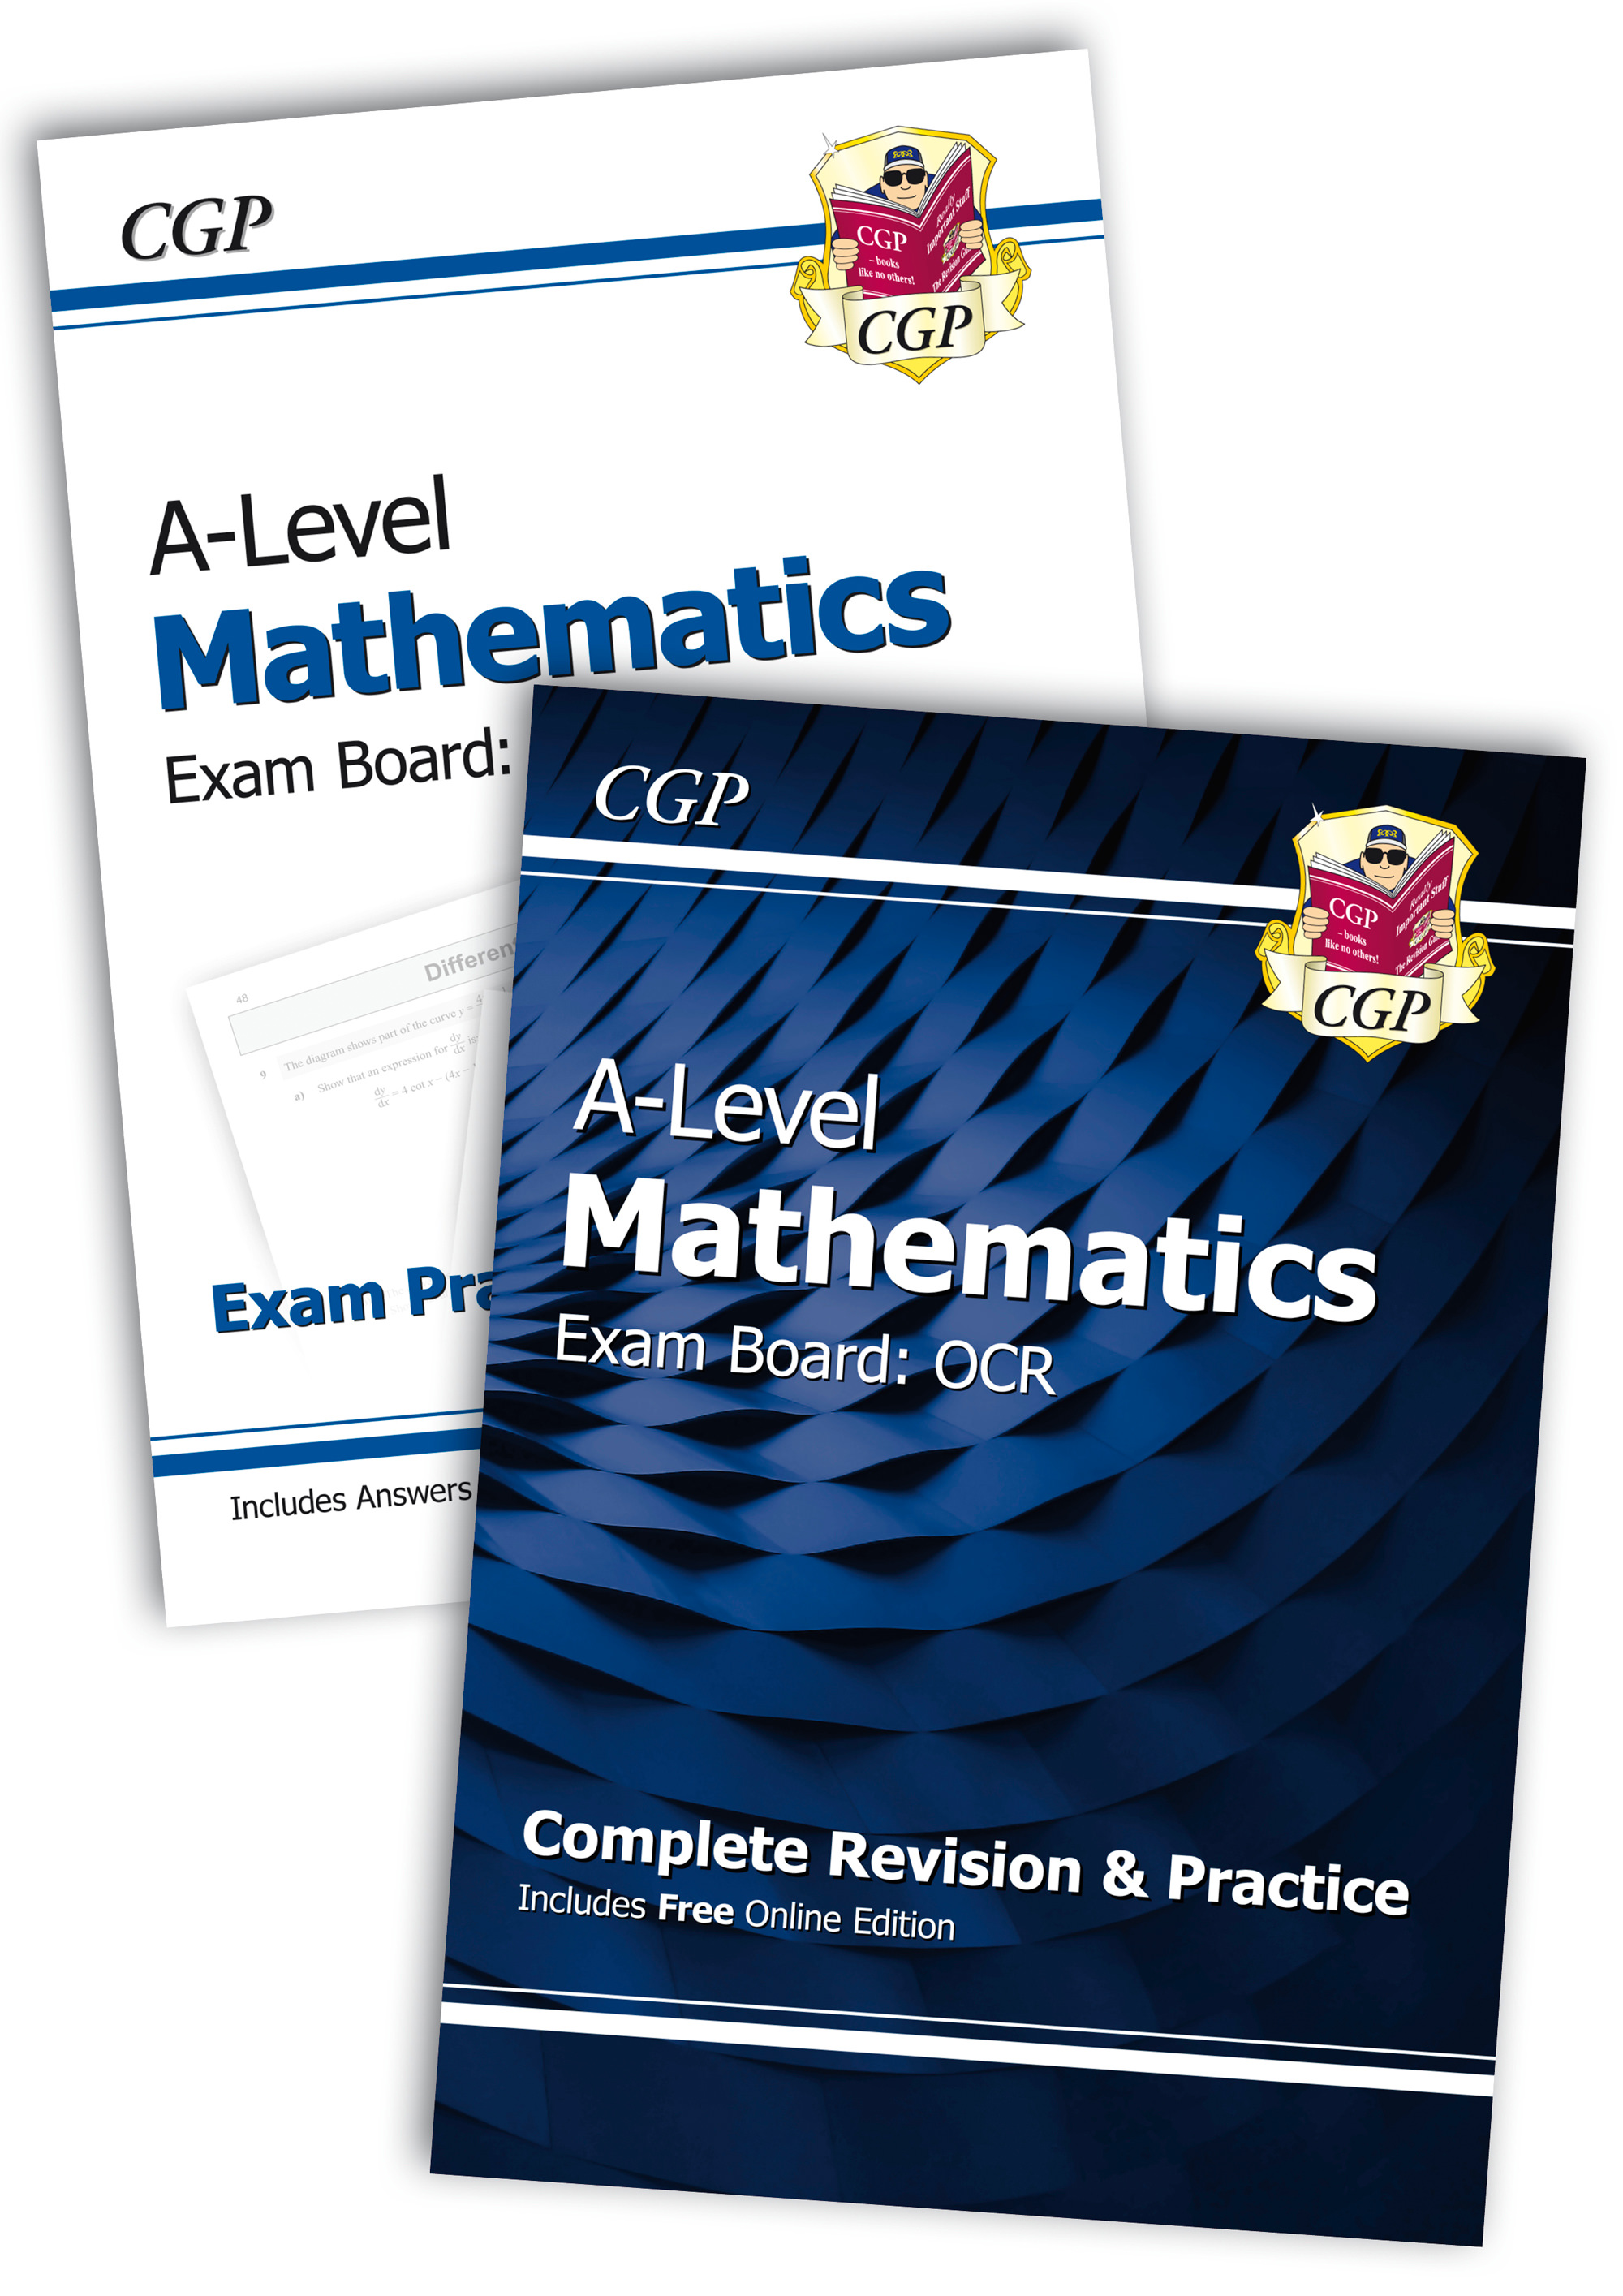 MRAB71 - Complete Revision and Exam Practice A-Level Maths Bundle: OCR Year 1 & 2